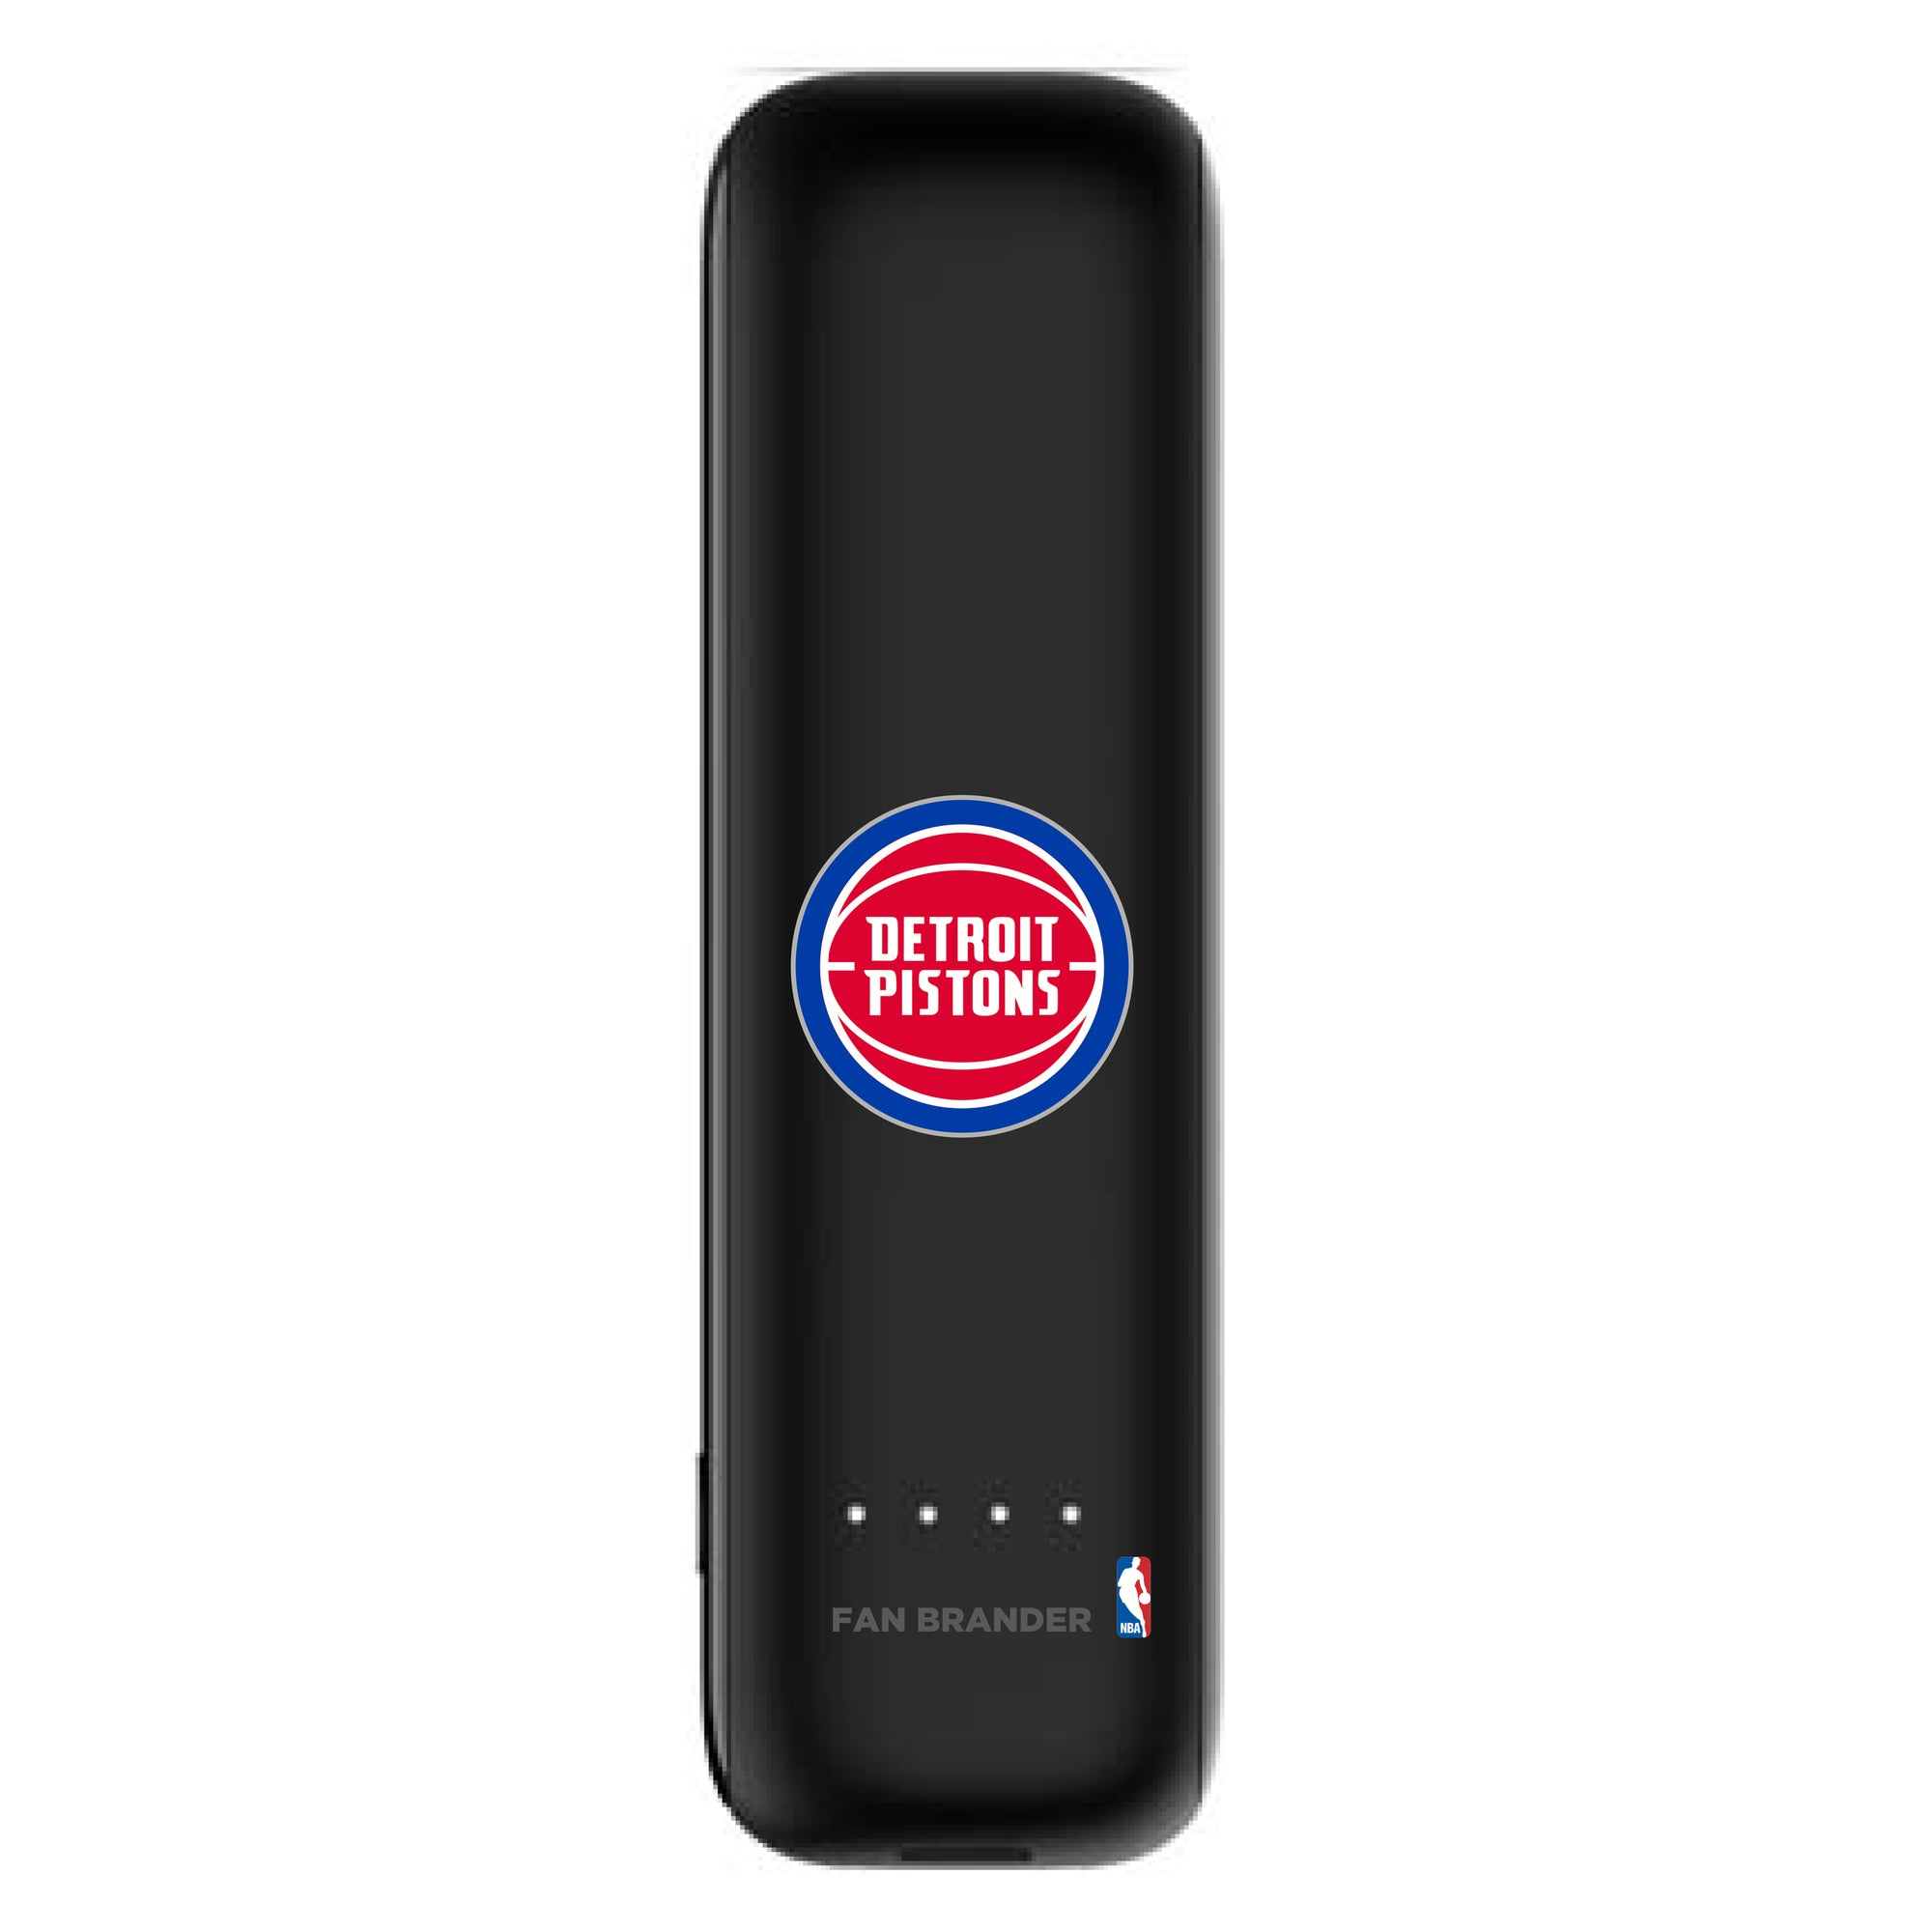 Detroit Pistons Mophie Power Boost Mini 2,600mAH